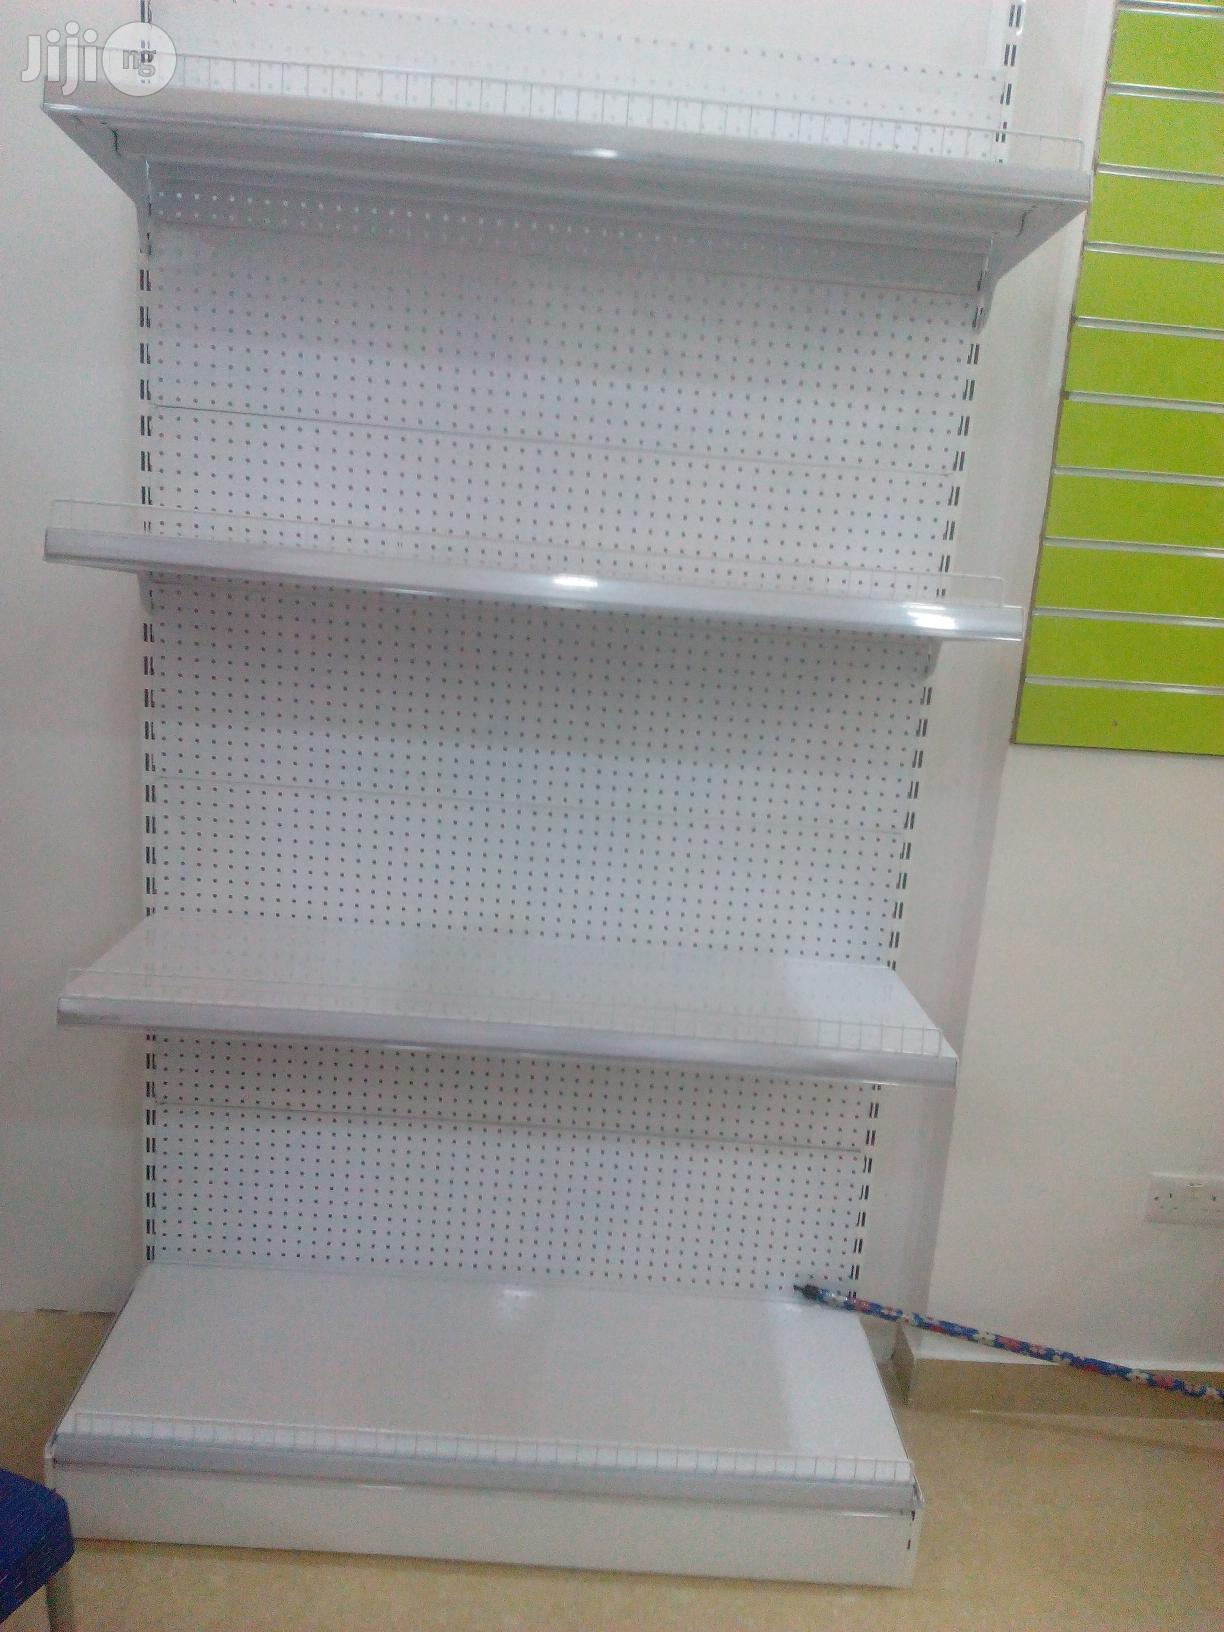 Standard And Professional High Quality Supermarket Shelves For Display | Store Equipment for sale in Lagos State, Nigeria